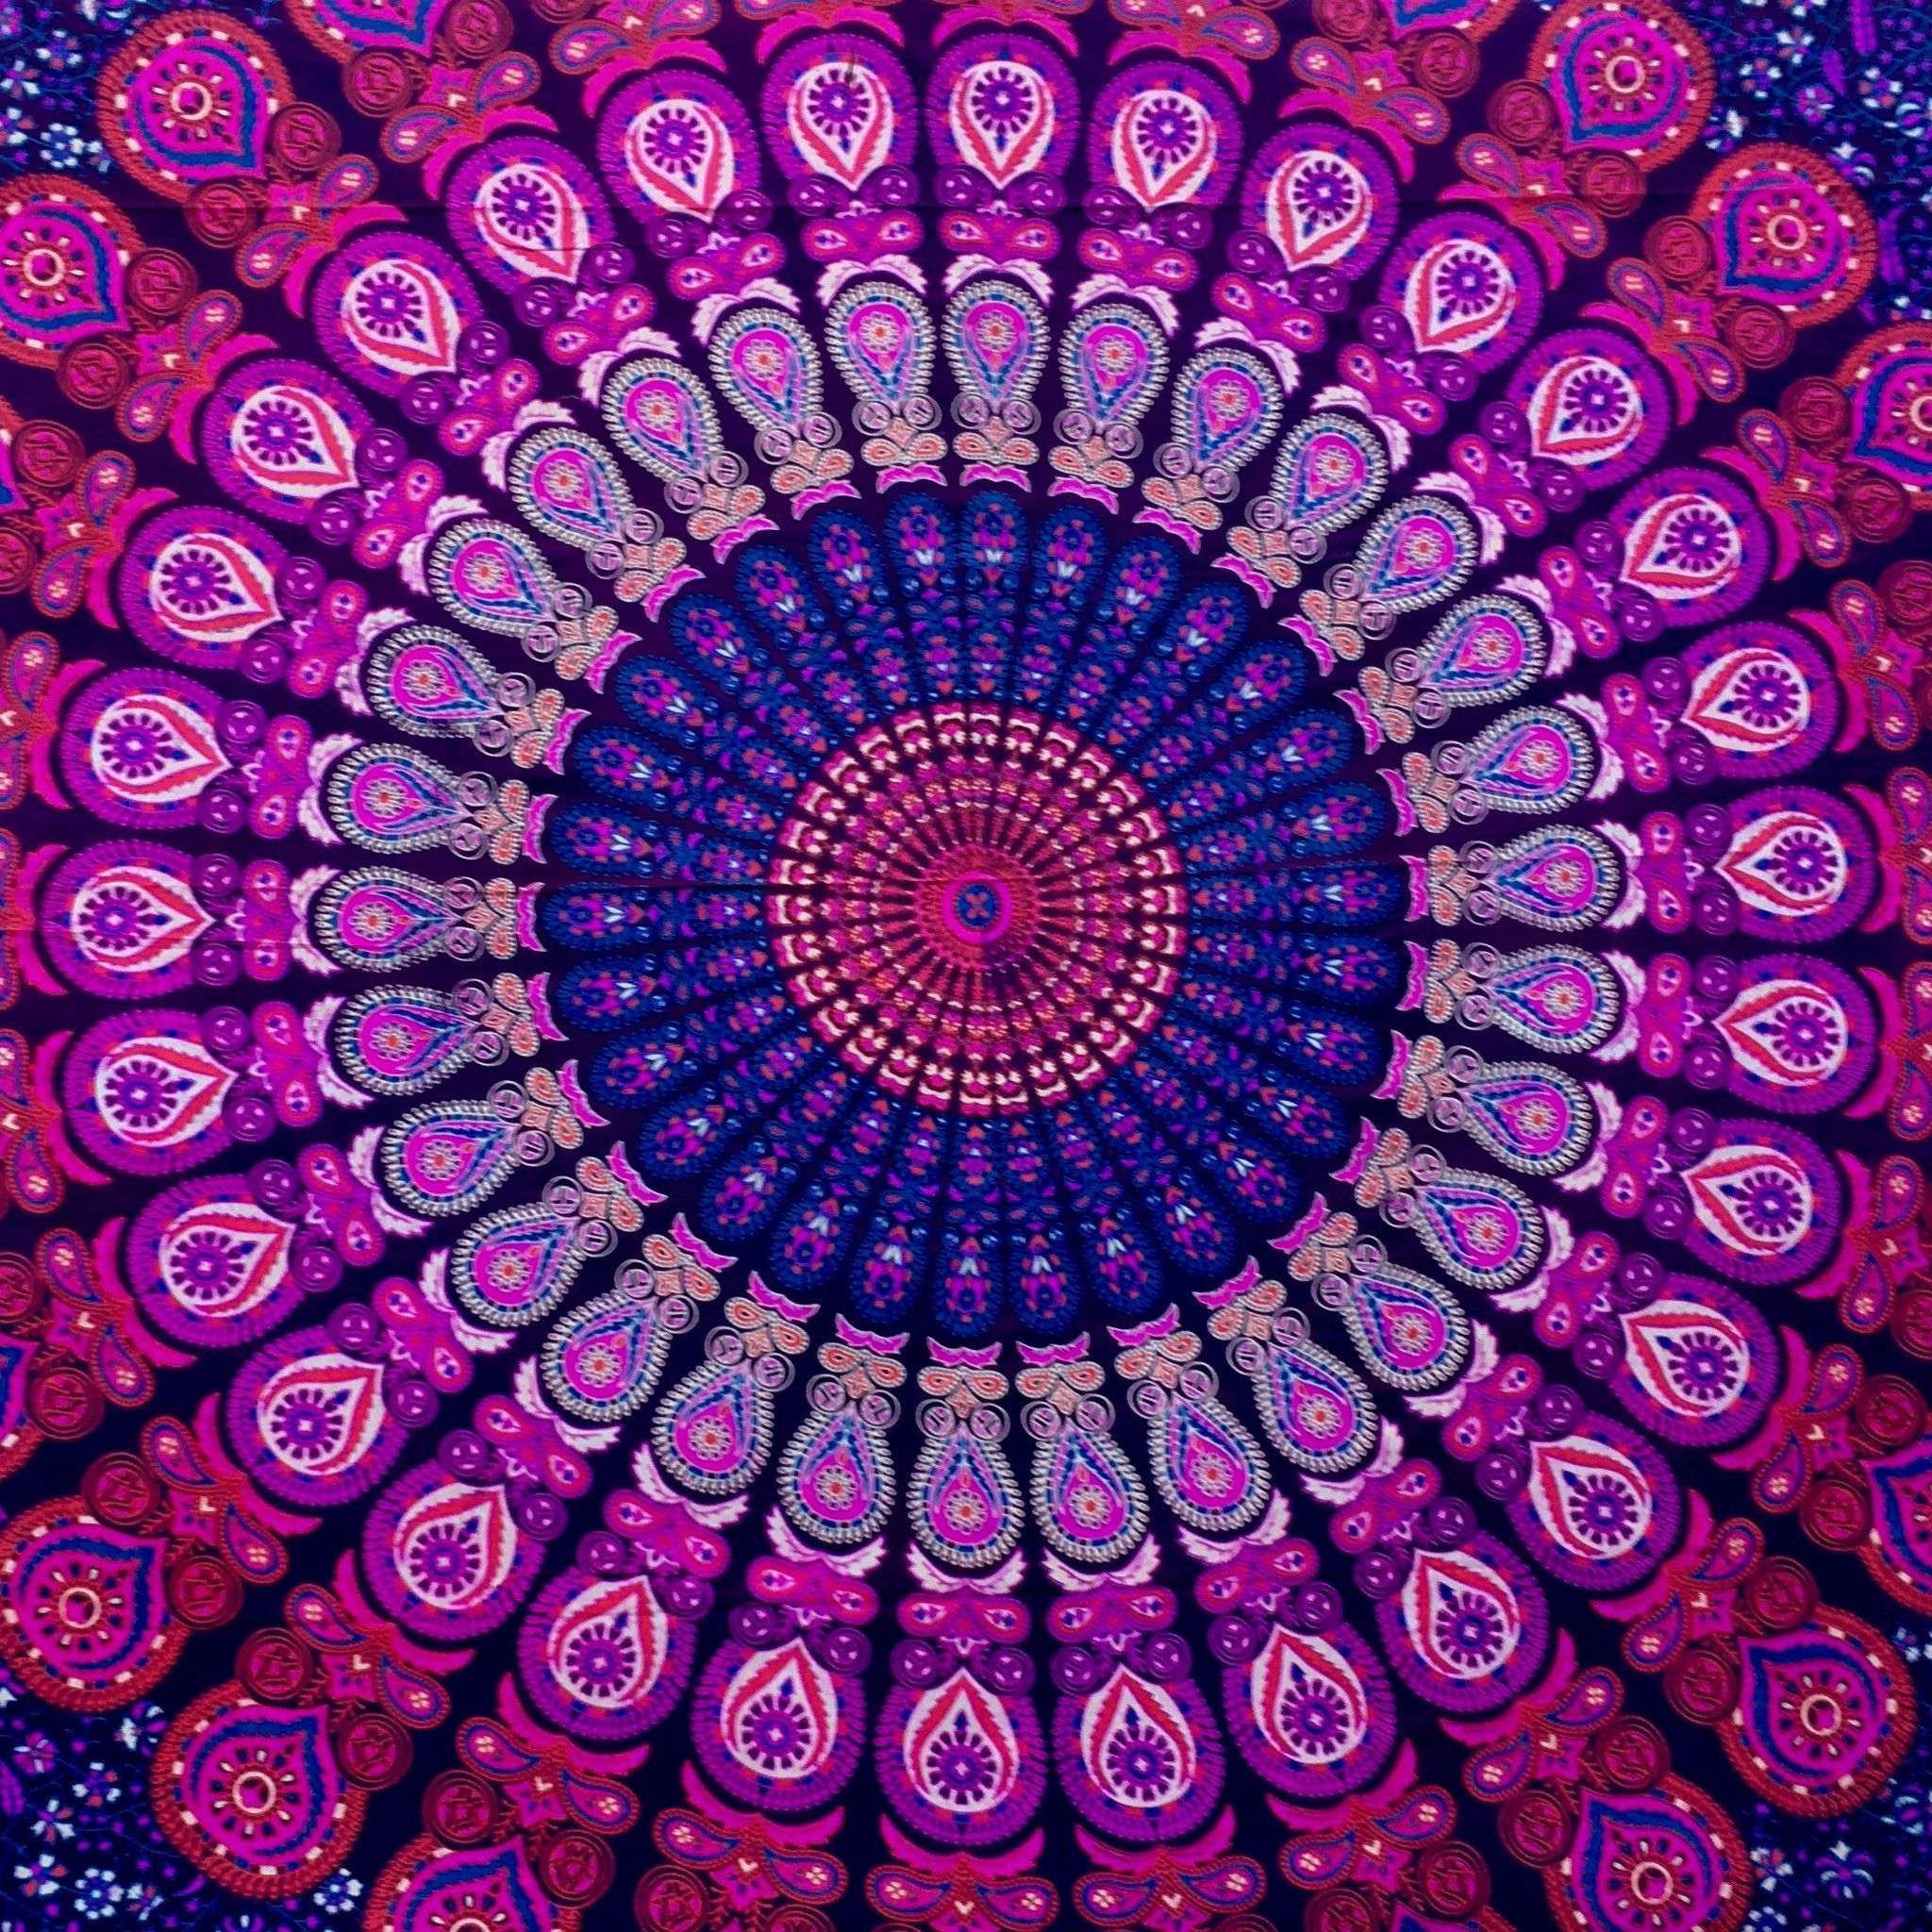 Made from 100% light-weight, breathable cotton fabric, the mandala tapestry is hand screen- printed in beautiful intricate motives. Instantly transform your room, dorm or apartment with this cost effe